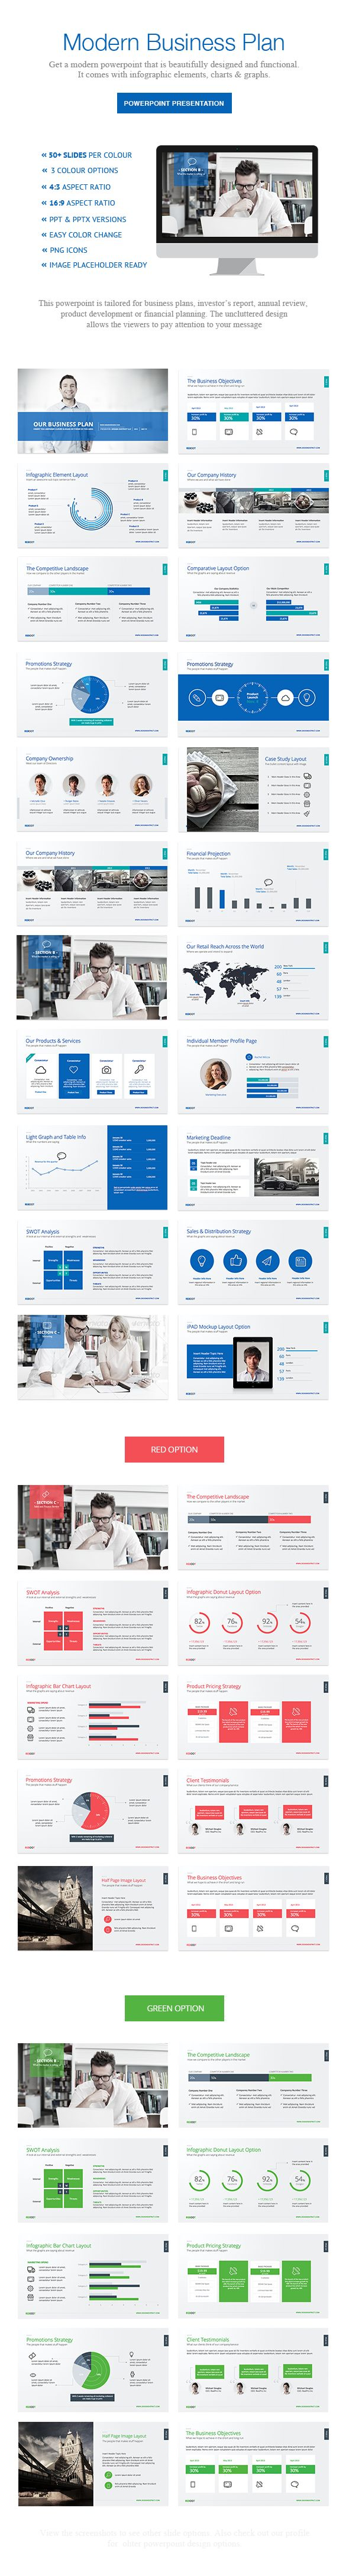 Business Plan Powerpoint by Design District, via Behance